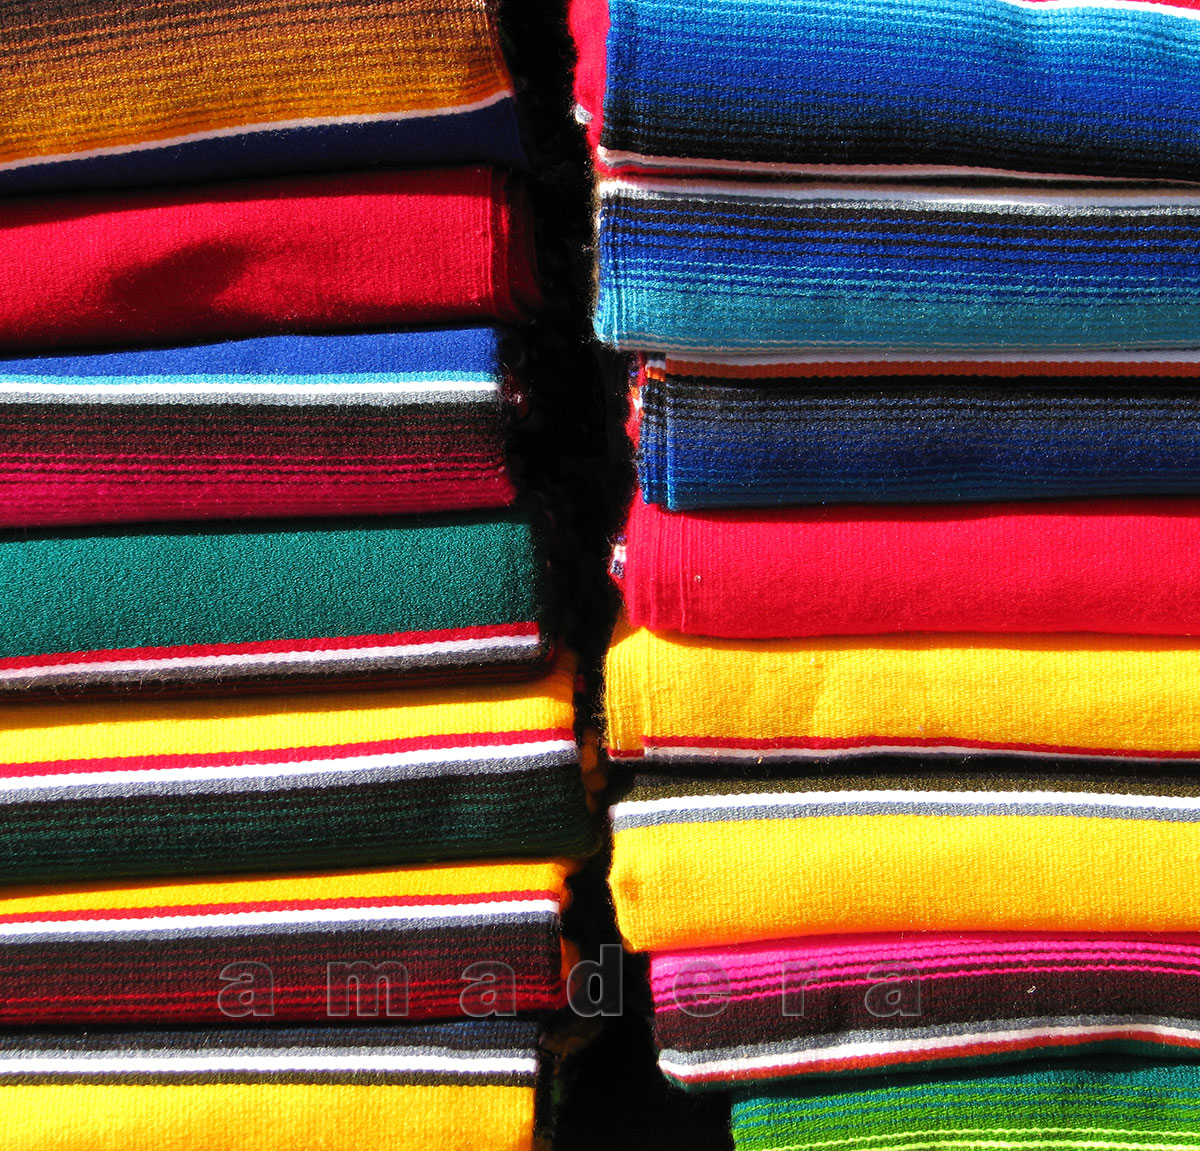 couvertures-mexicaines-amadera